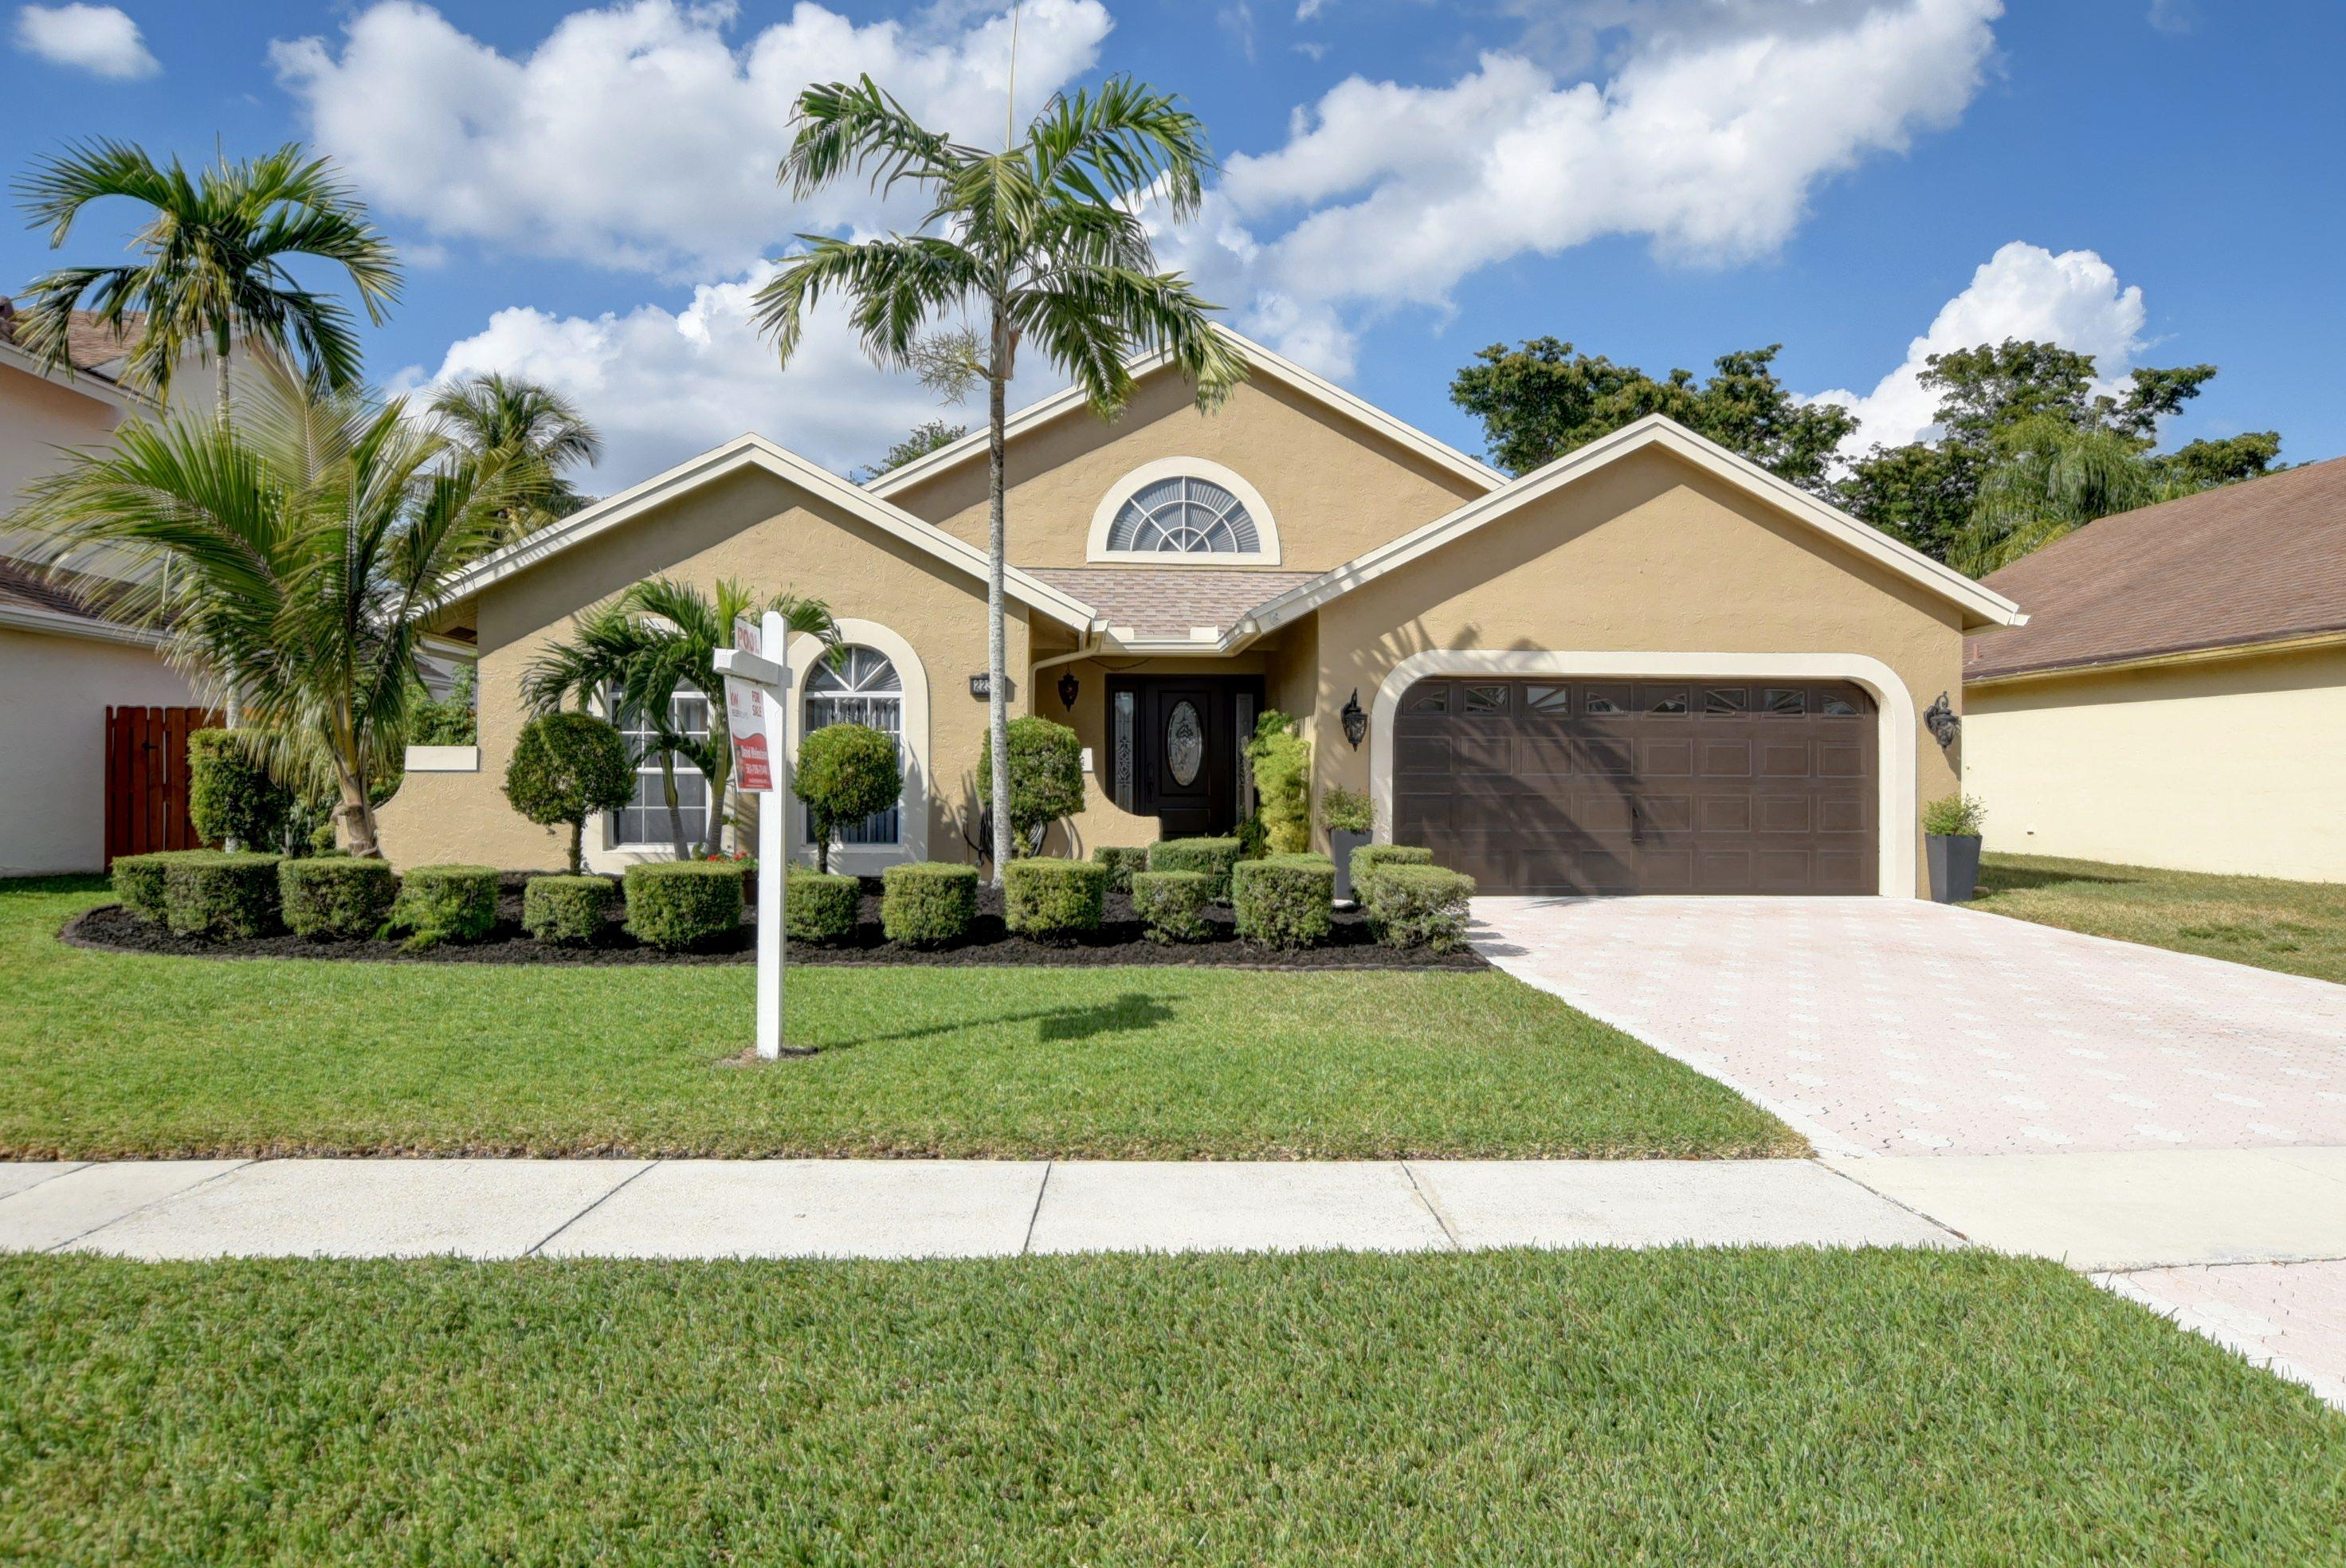 Beautiful Pool Home at Boca Winds. Open and spacious floor plan. This home features 3 bedroom, 2 bath, 2 car garage, screened patio and Pool. Low HOA. Excellent location! Less than two minutes away from 3 ''A'' rated schools.